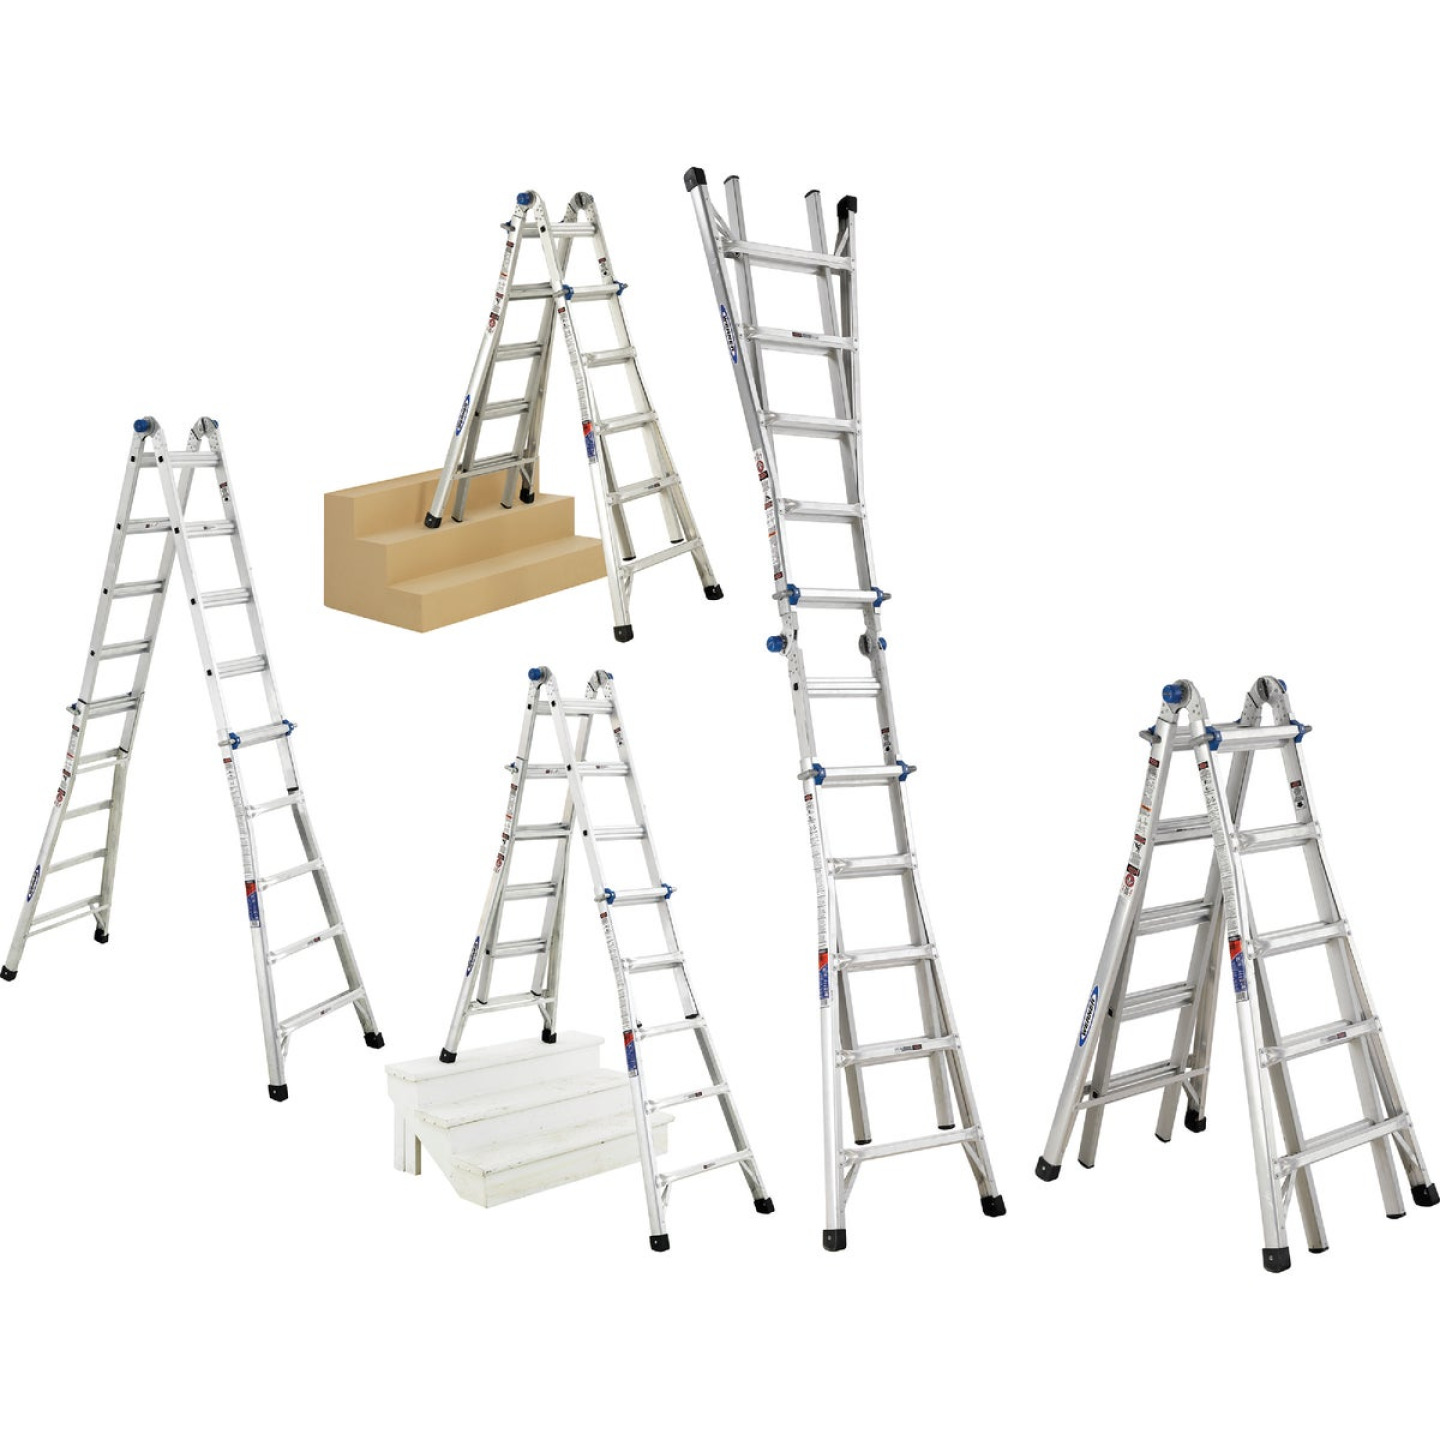 Werner 22 Ft. Aluminum Multi-Position Telescoping Ladder with 300 Lb. Load Capacity Type IA Ladder Rating Image 1